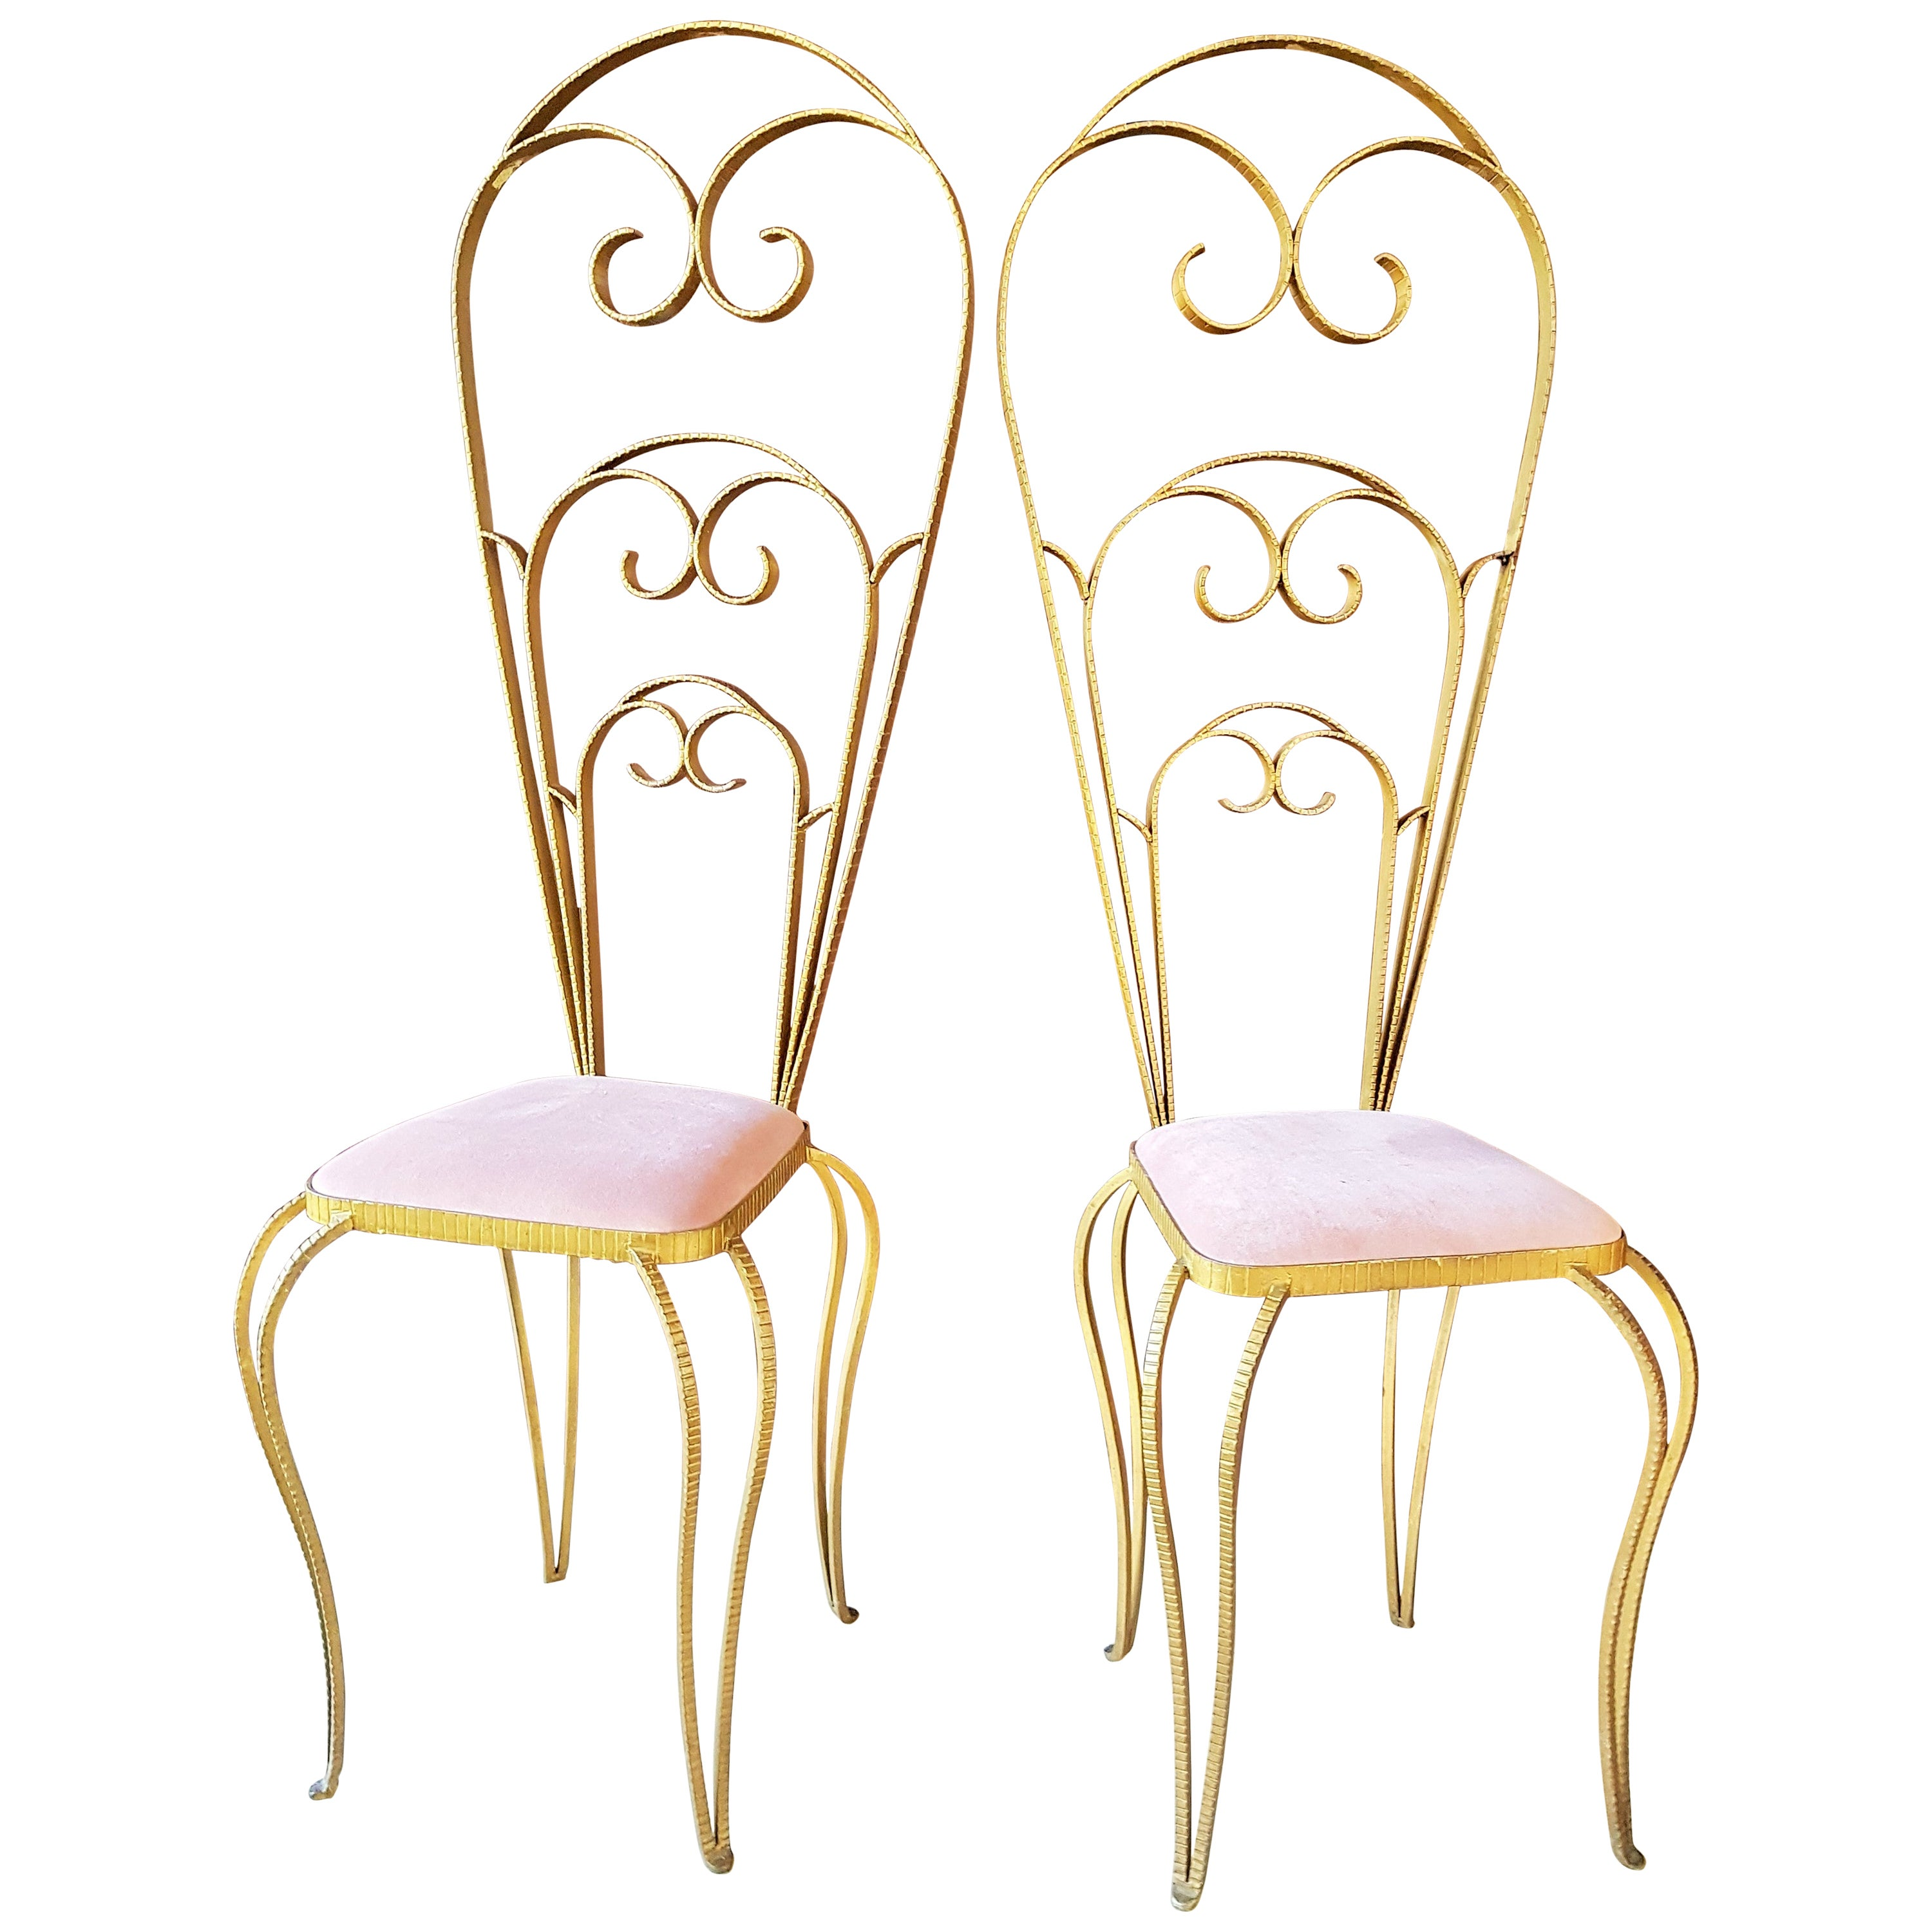 Art Deco Pair of Chairs Wrought Iron by Luigi Colli, Italy, 1940s